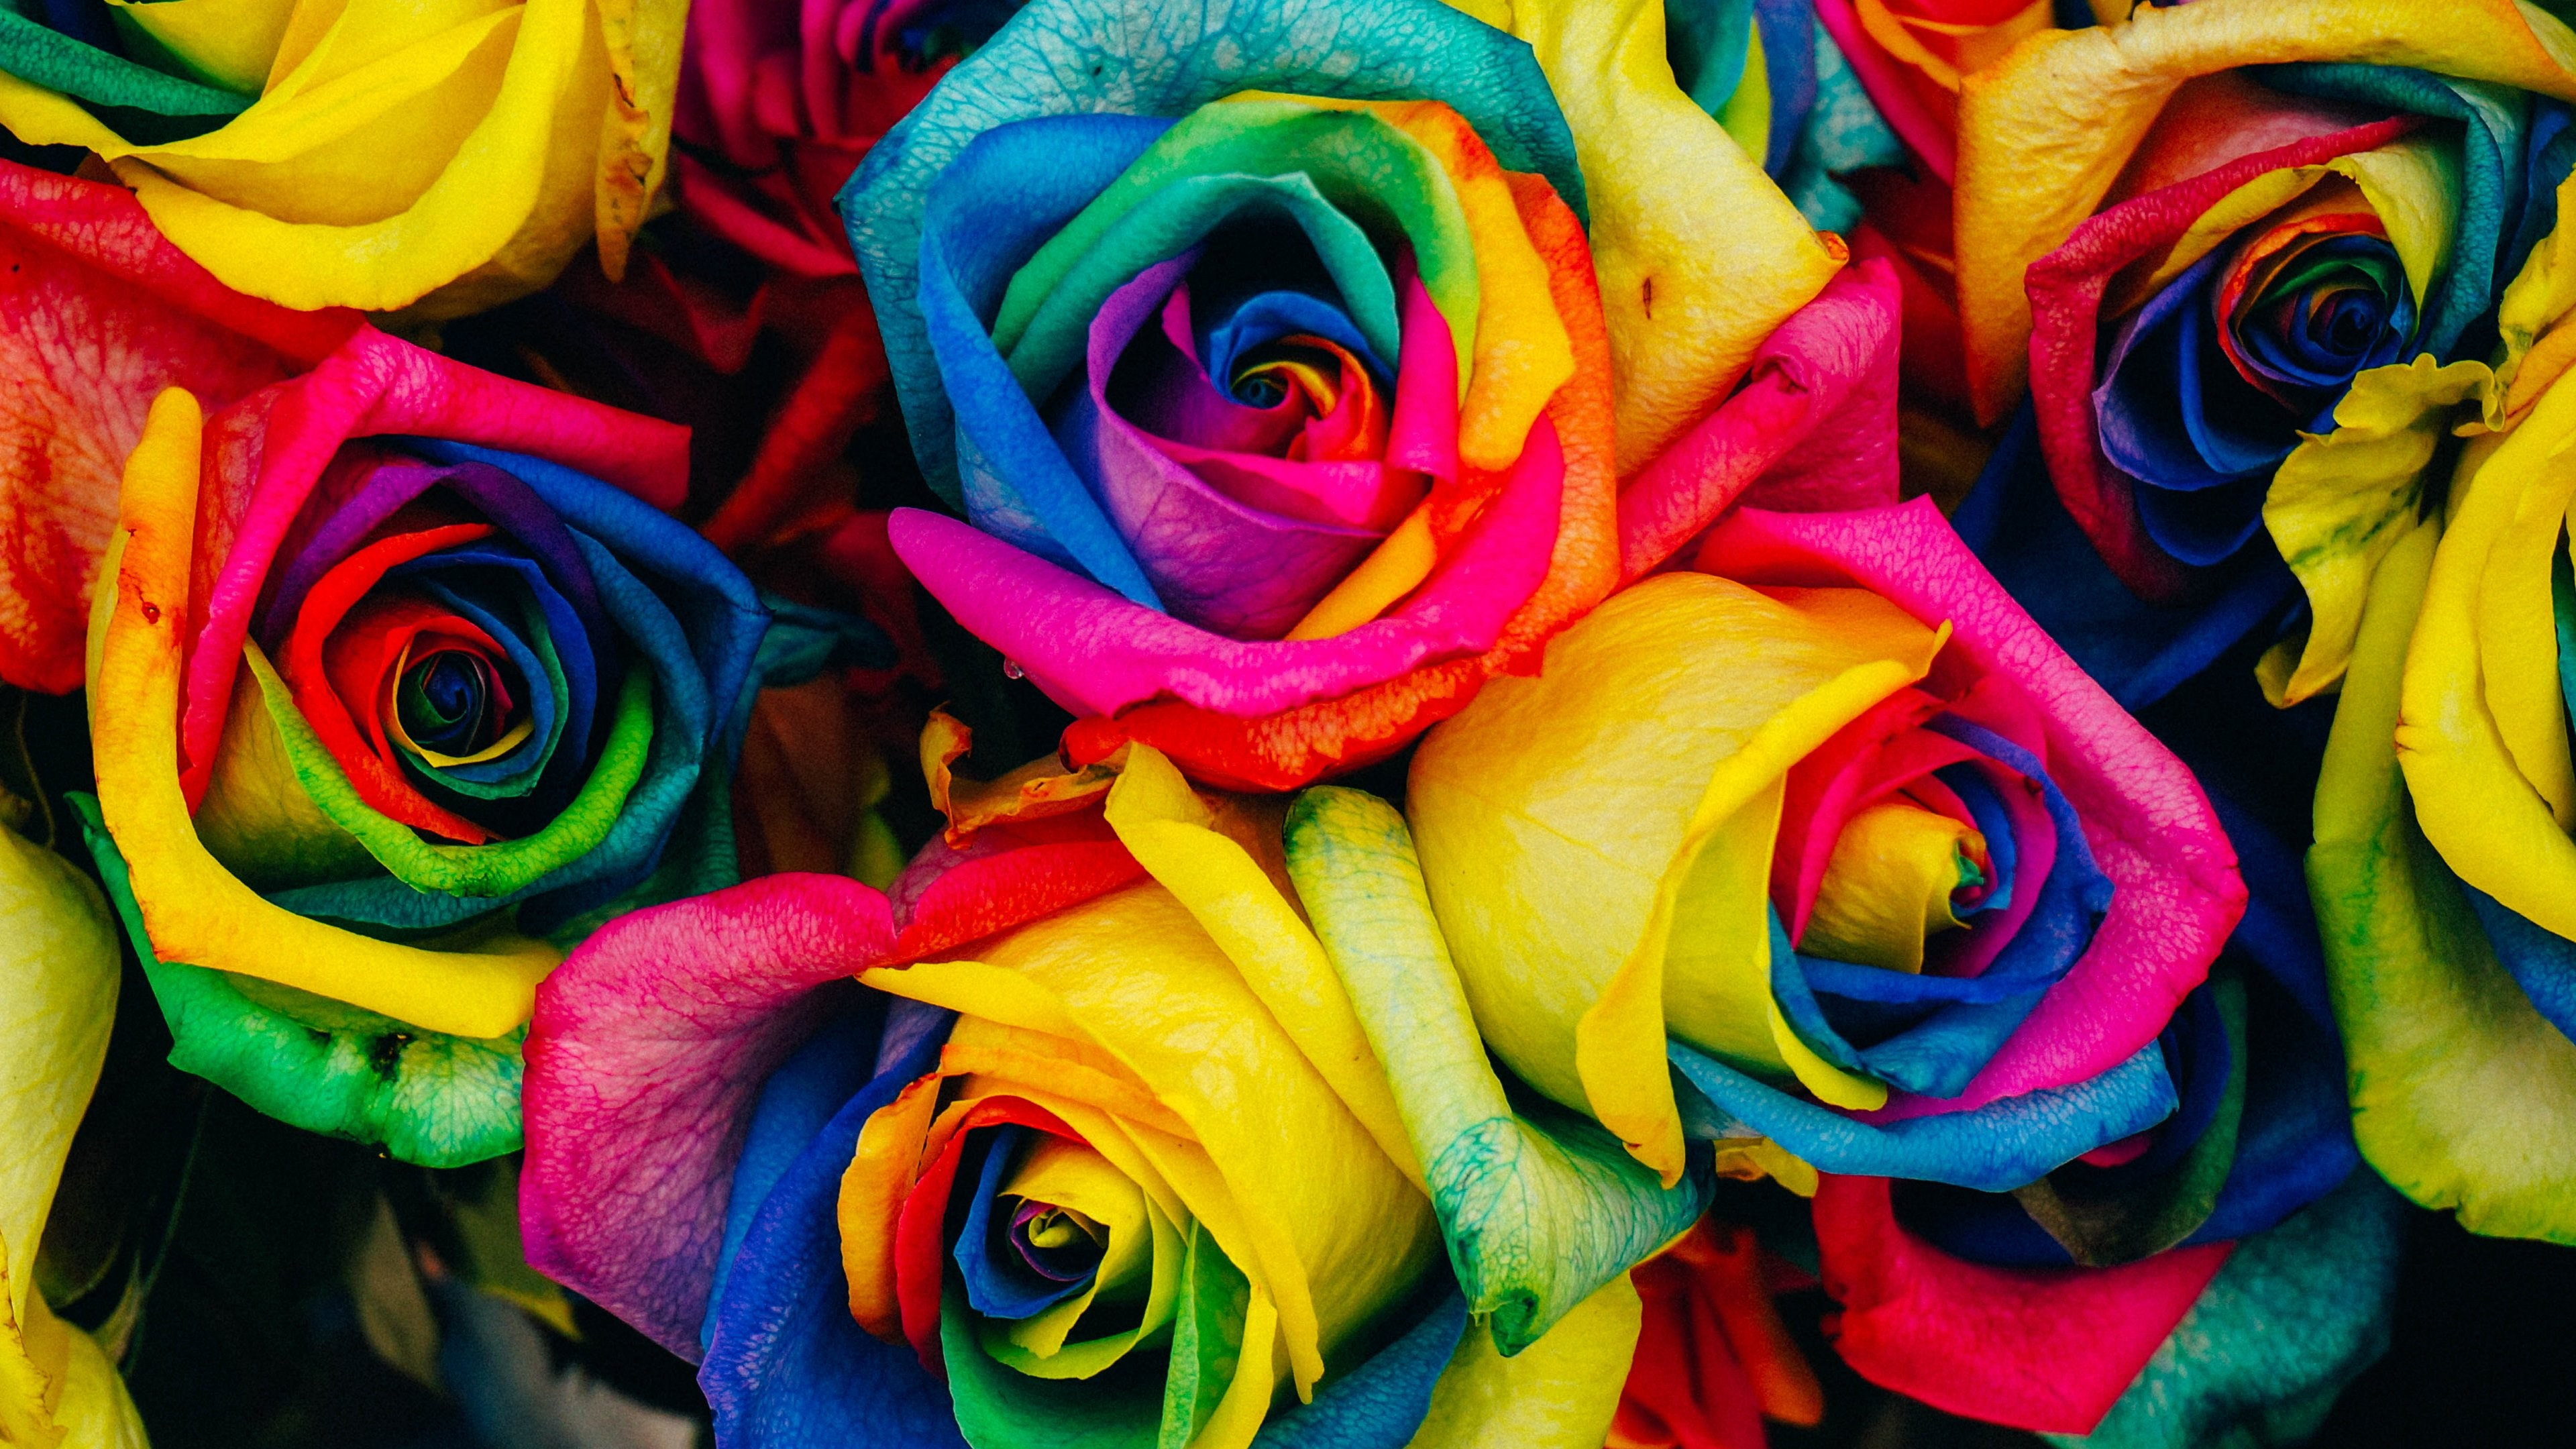 Rainbow Roses Wallpaper 48 Images